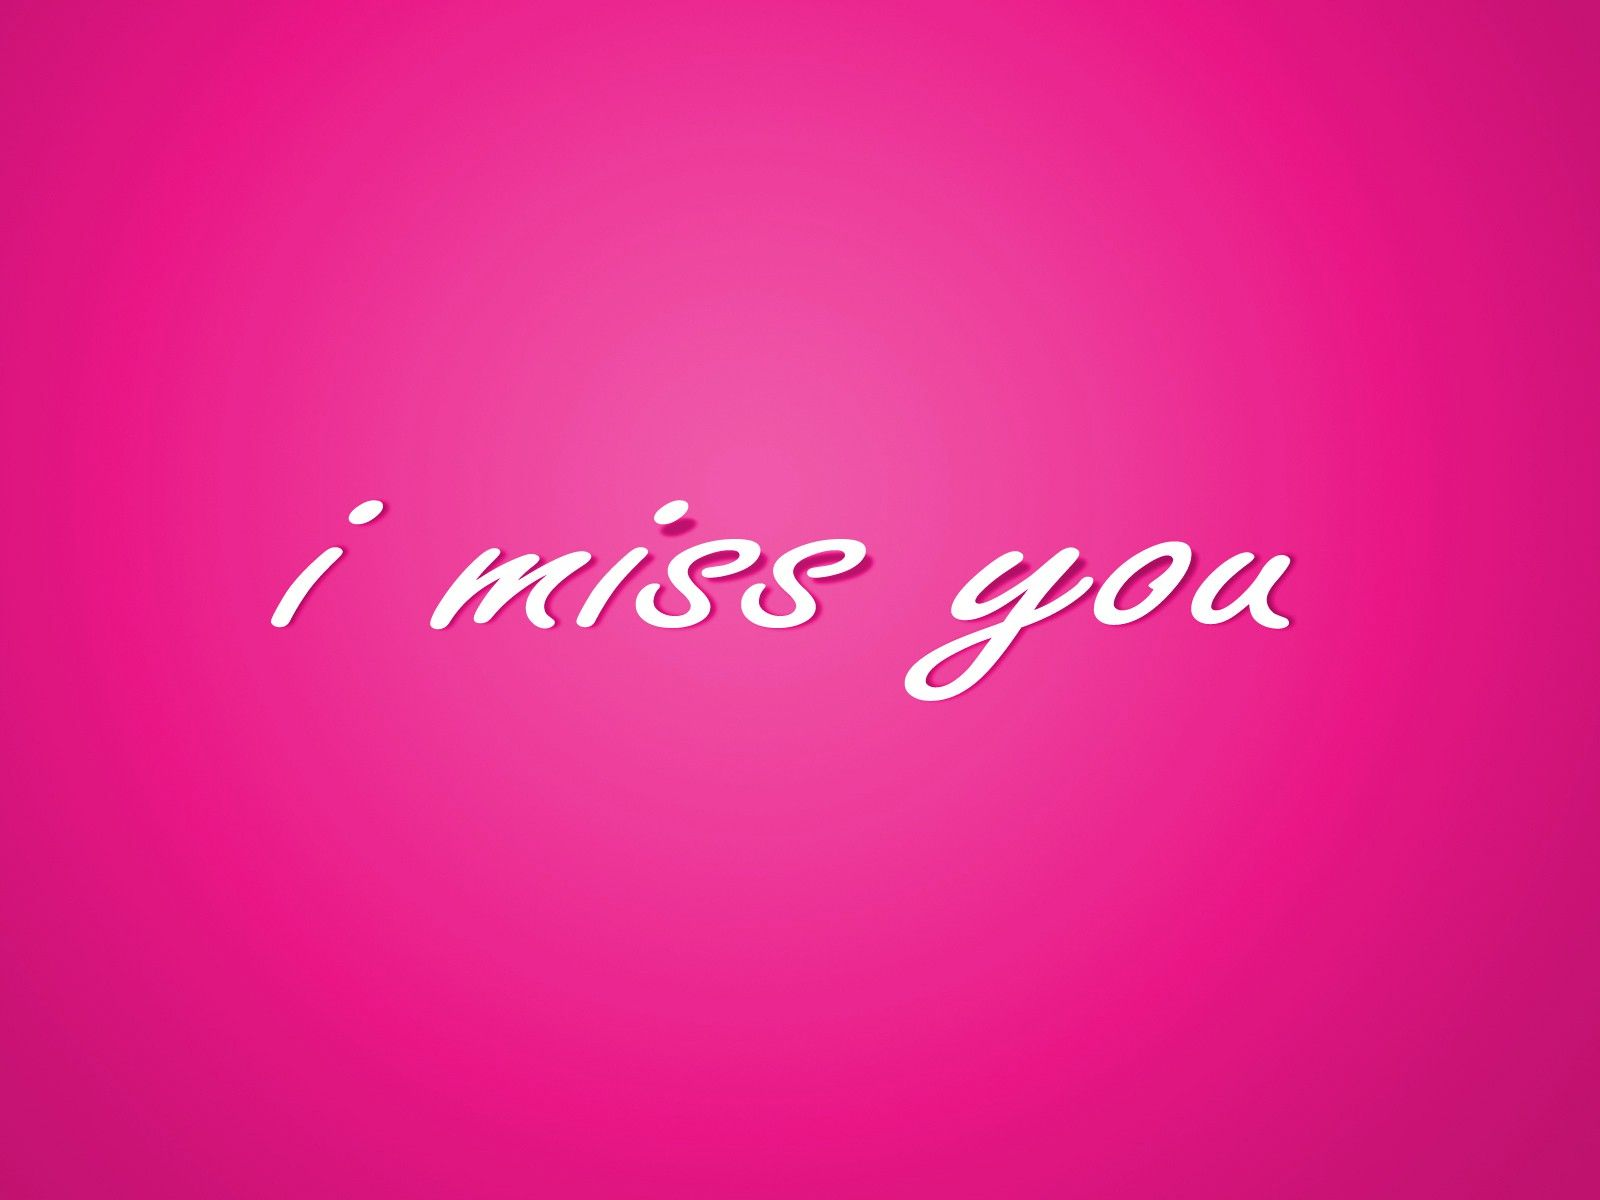 I Miss You Hd Images Pics Download Free 1080p I Miss You